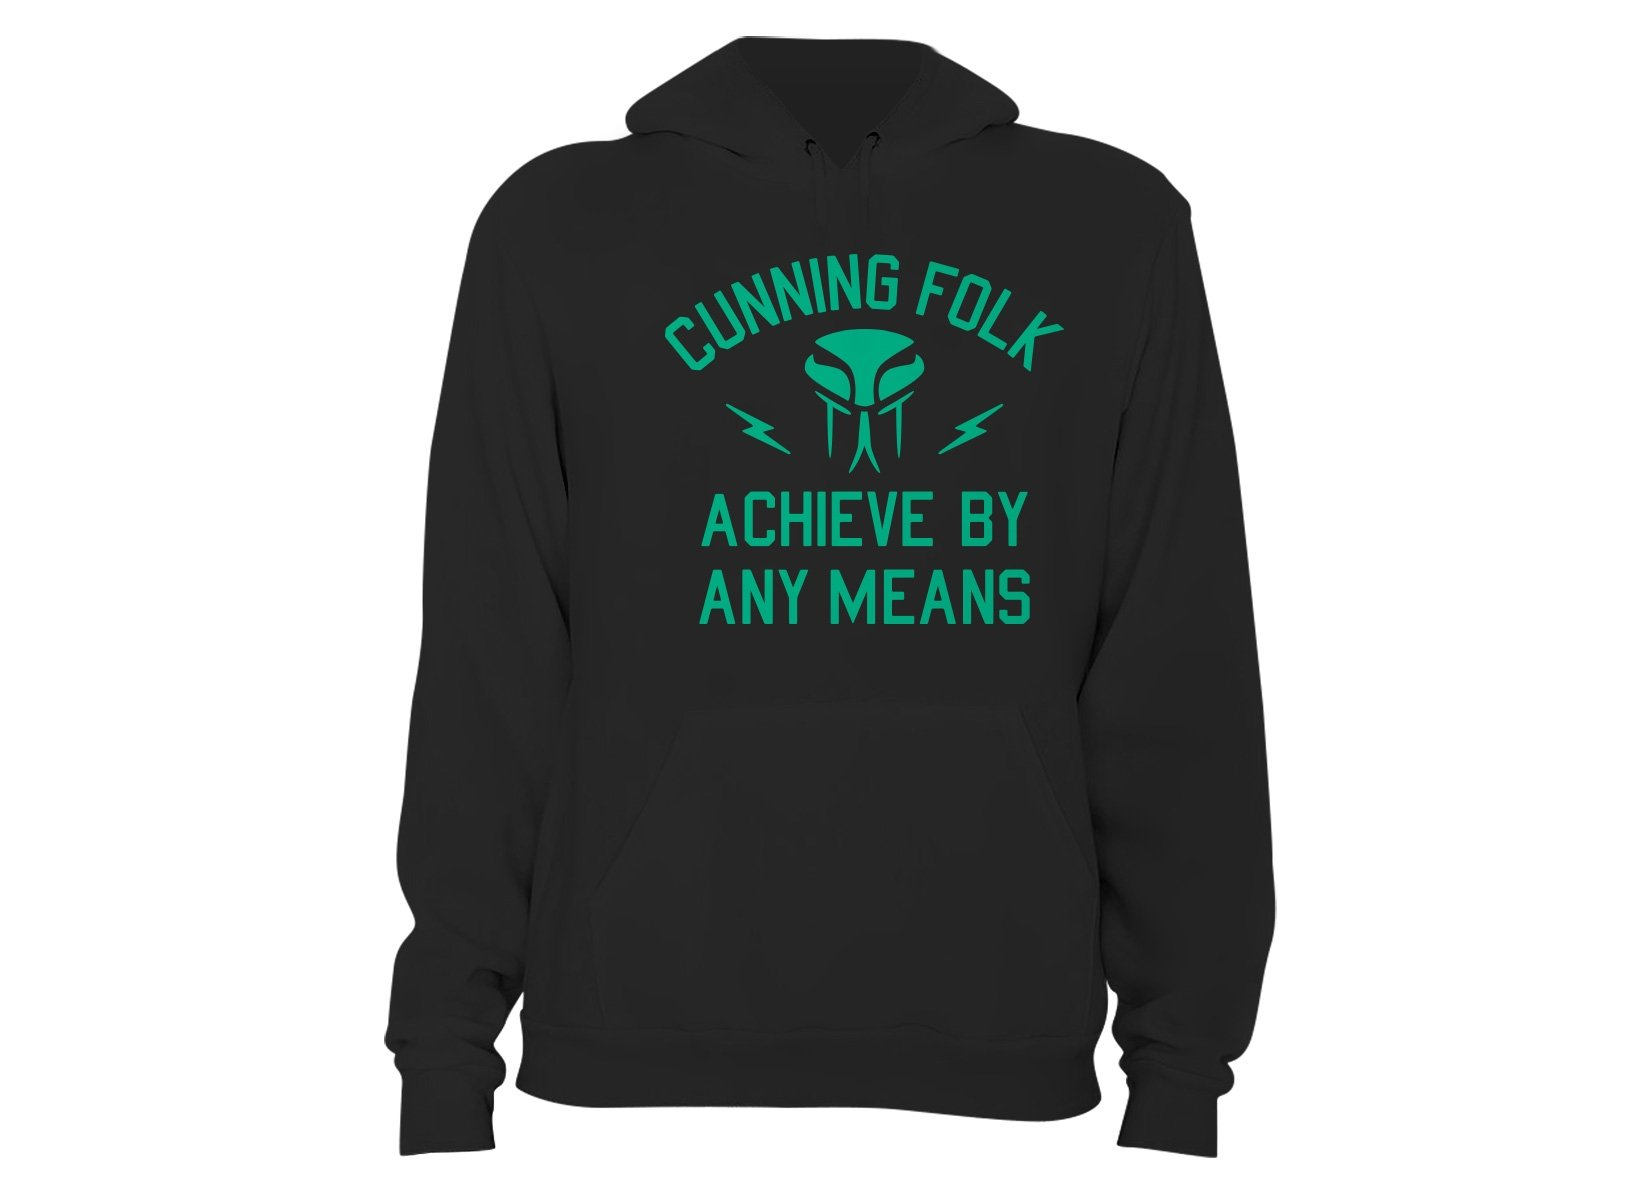 Cunning Folk Achieve By Any Means on Hoodie